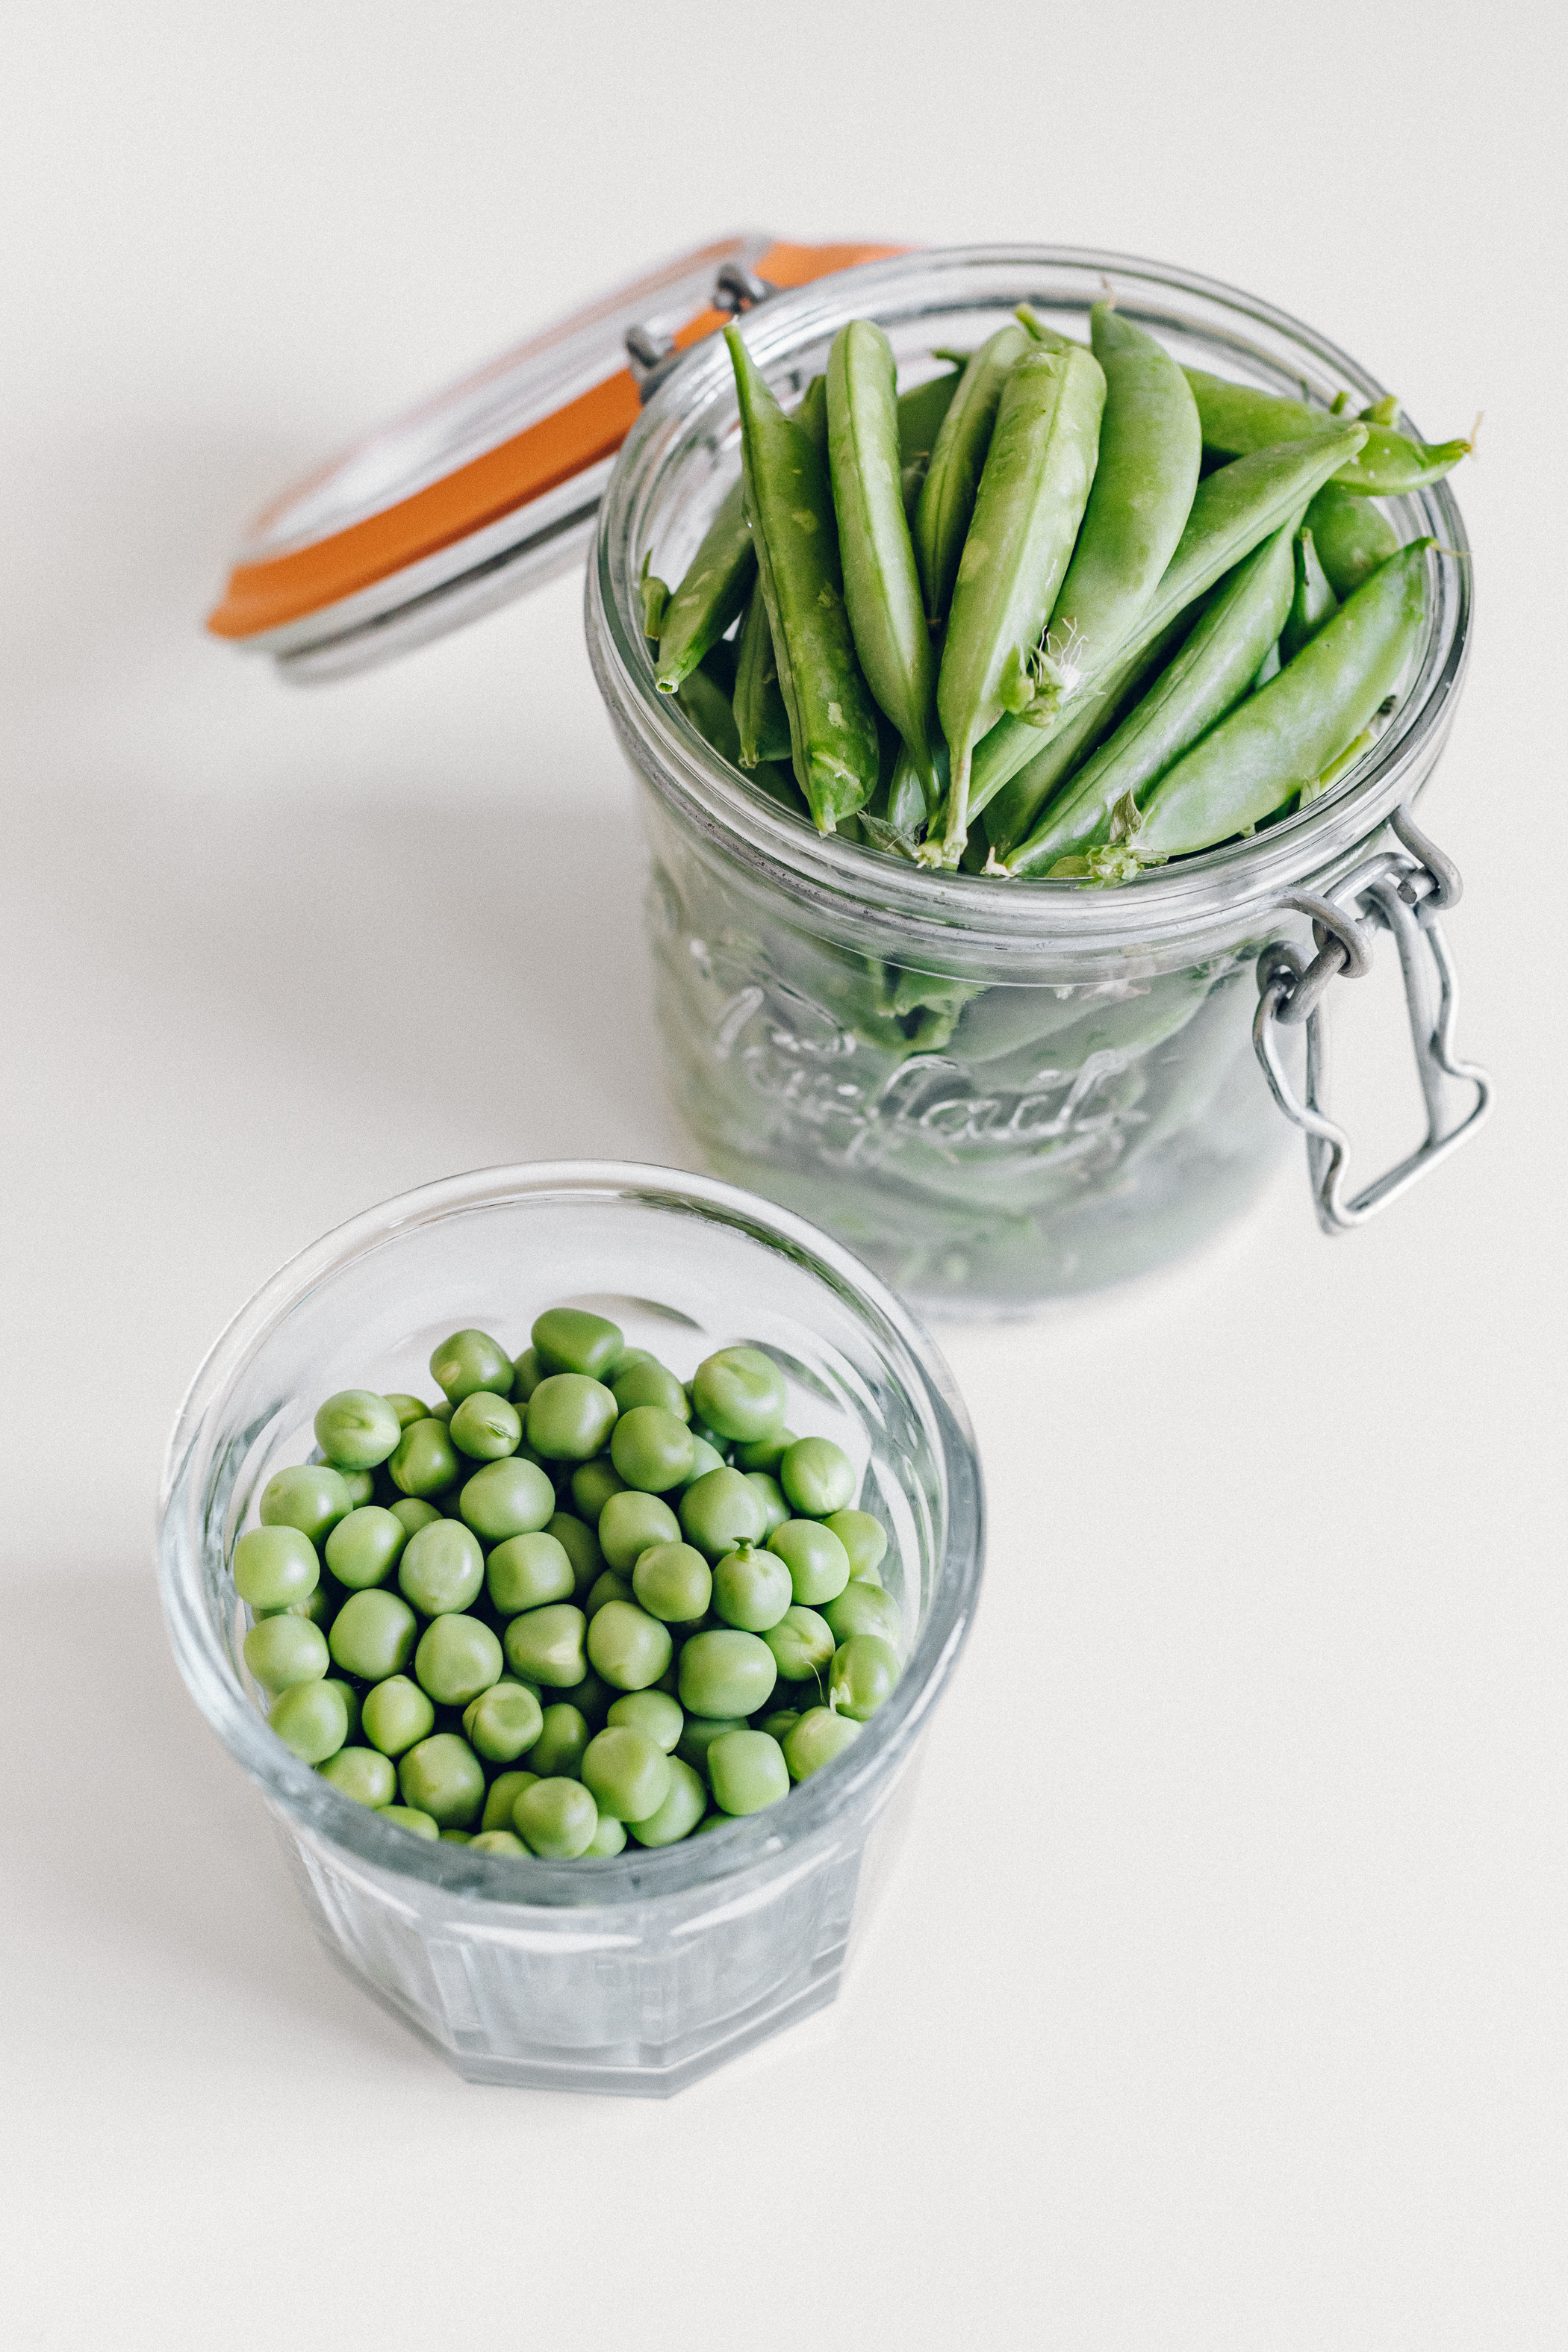 Sugar Snap Peas - These (and snow peas) come in as a close second as my favorite spring veggie. And can be stored the same way, too.To capture and hold onto the water that keeps peas so fresh and crisp, simply place in an airtight jar or container.Remove, rinse, and prepare as you please! I love using these raw in salads for a sweet crunch, or giving them a quick steam to go along with other beans, grains, veggies, and a sauce for dinner.These are important to only buy in season for the crispest, sweetest taste. Look for snap peas that are bright green and preferably a little bulging from their peas inside, meaning the farmer let them grow to maturity and didn't pick them too soon!I recommend enjoying these within a week.